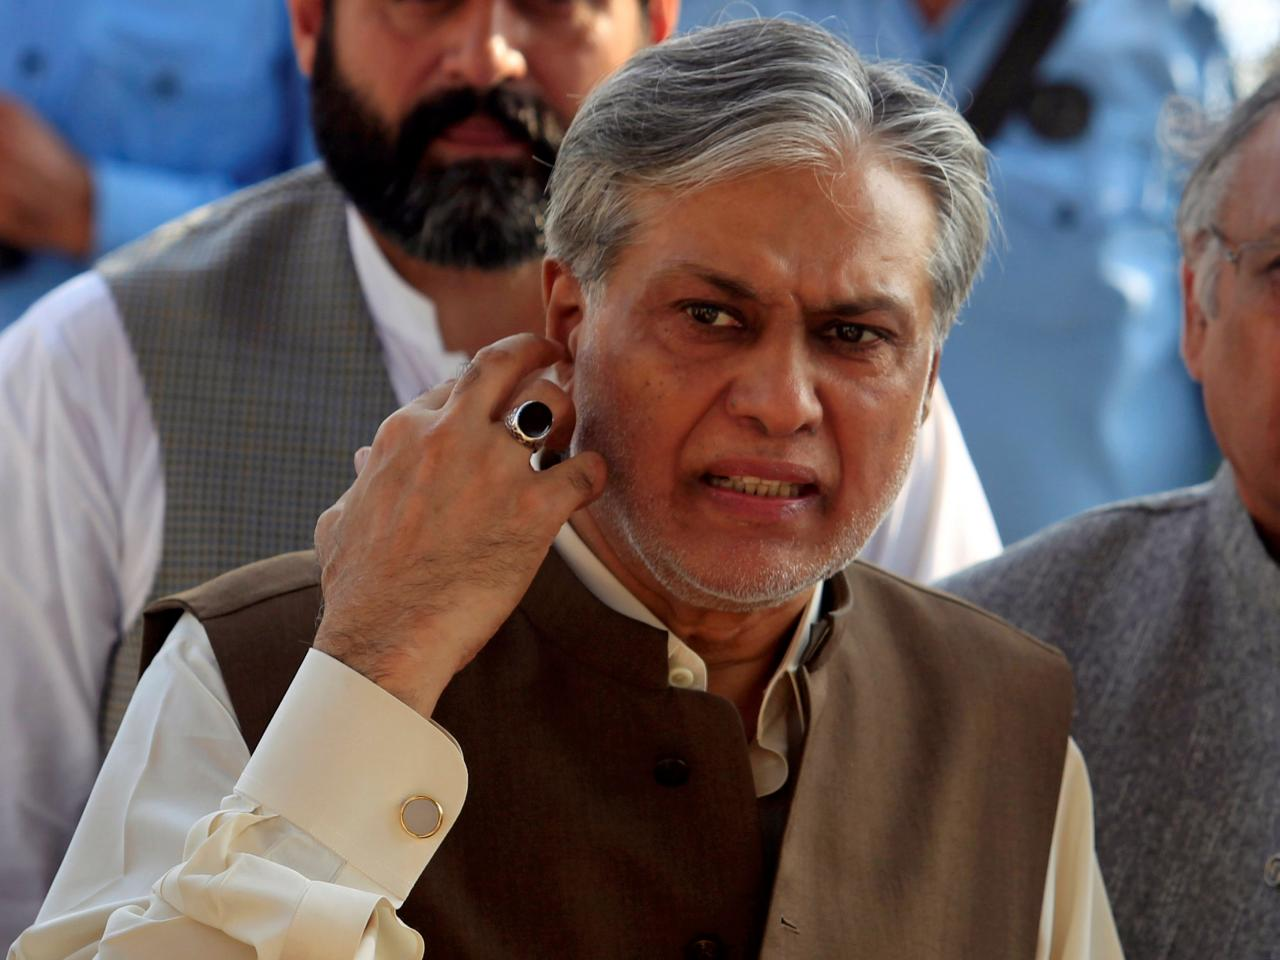 Non-bailable warrants issued against Ishaq Dar in graft case